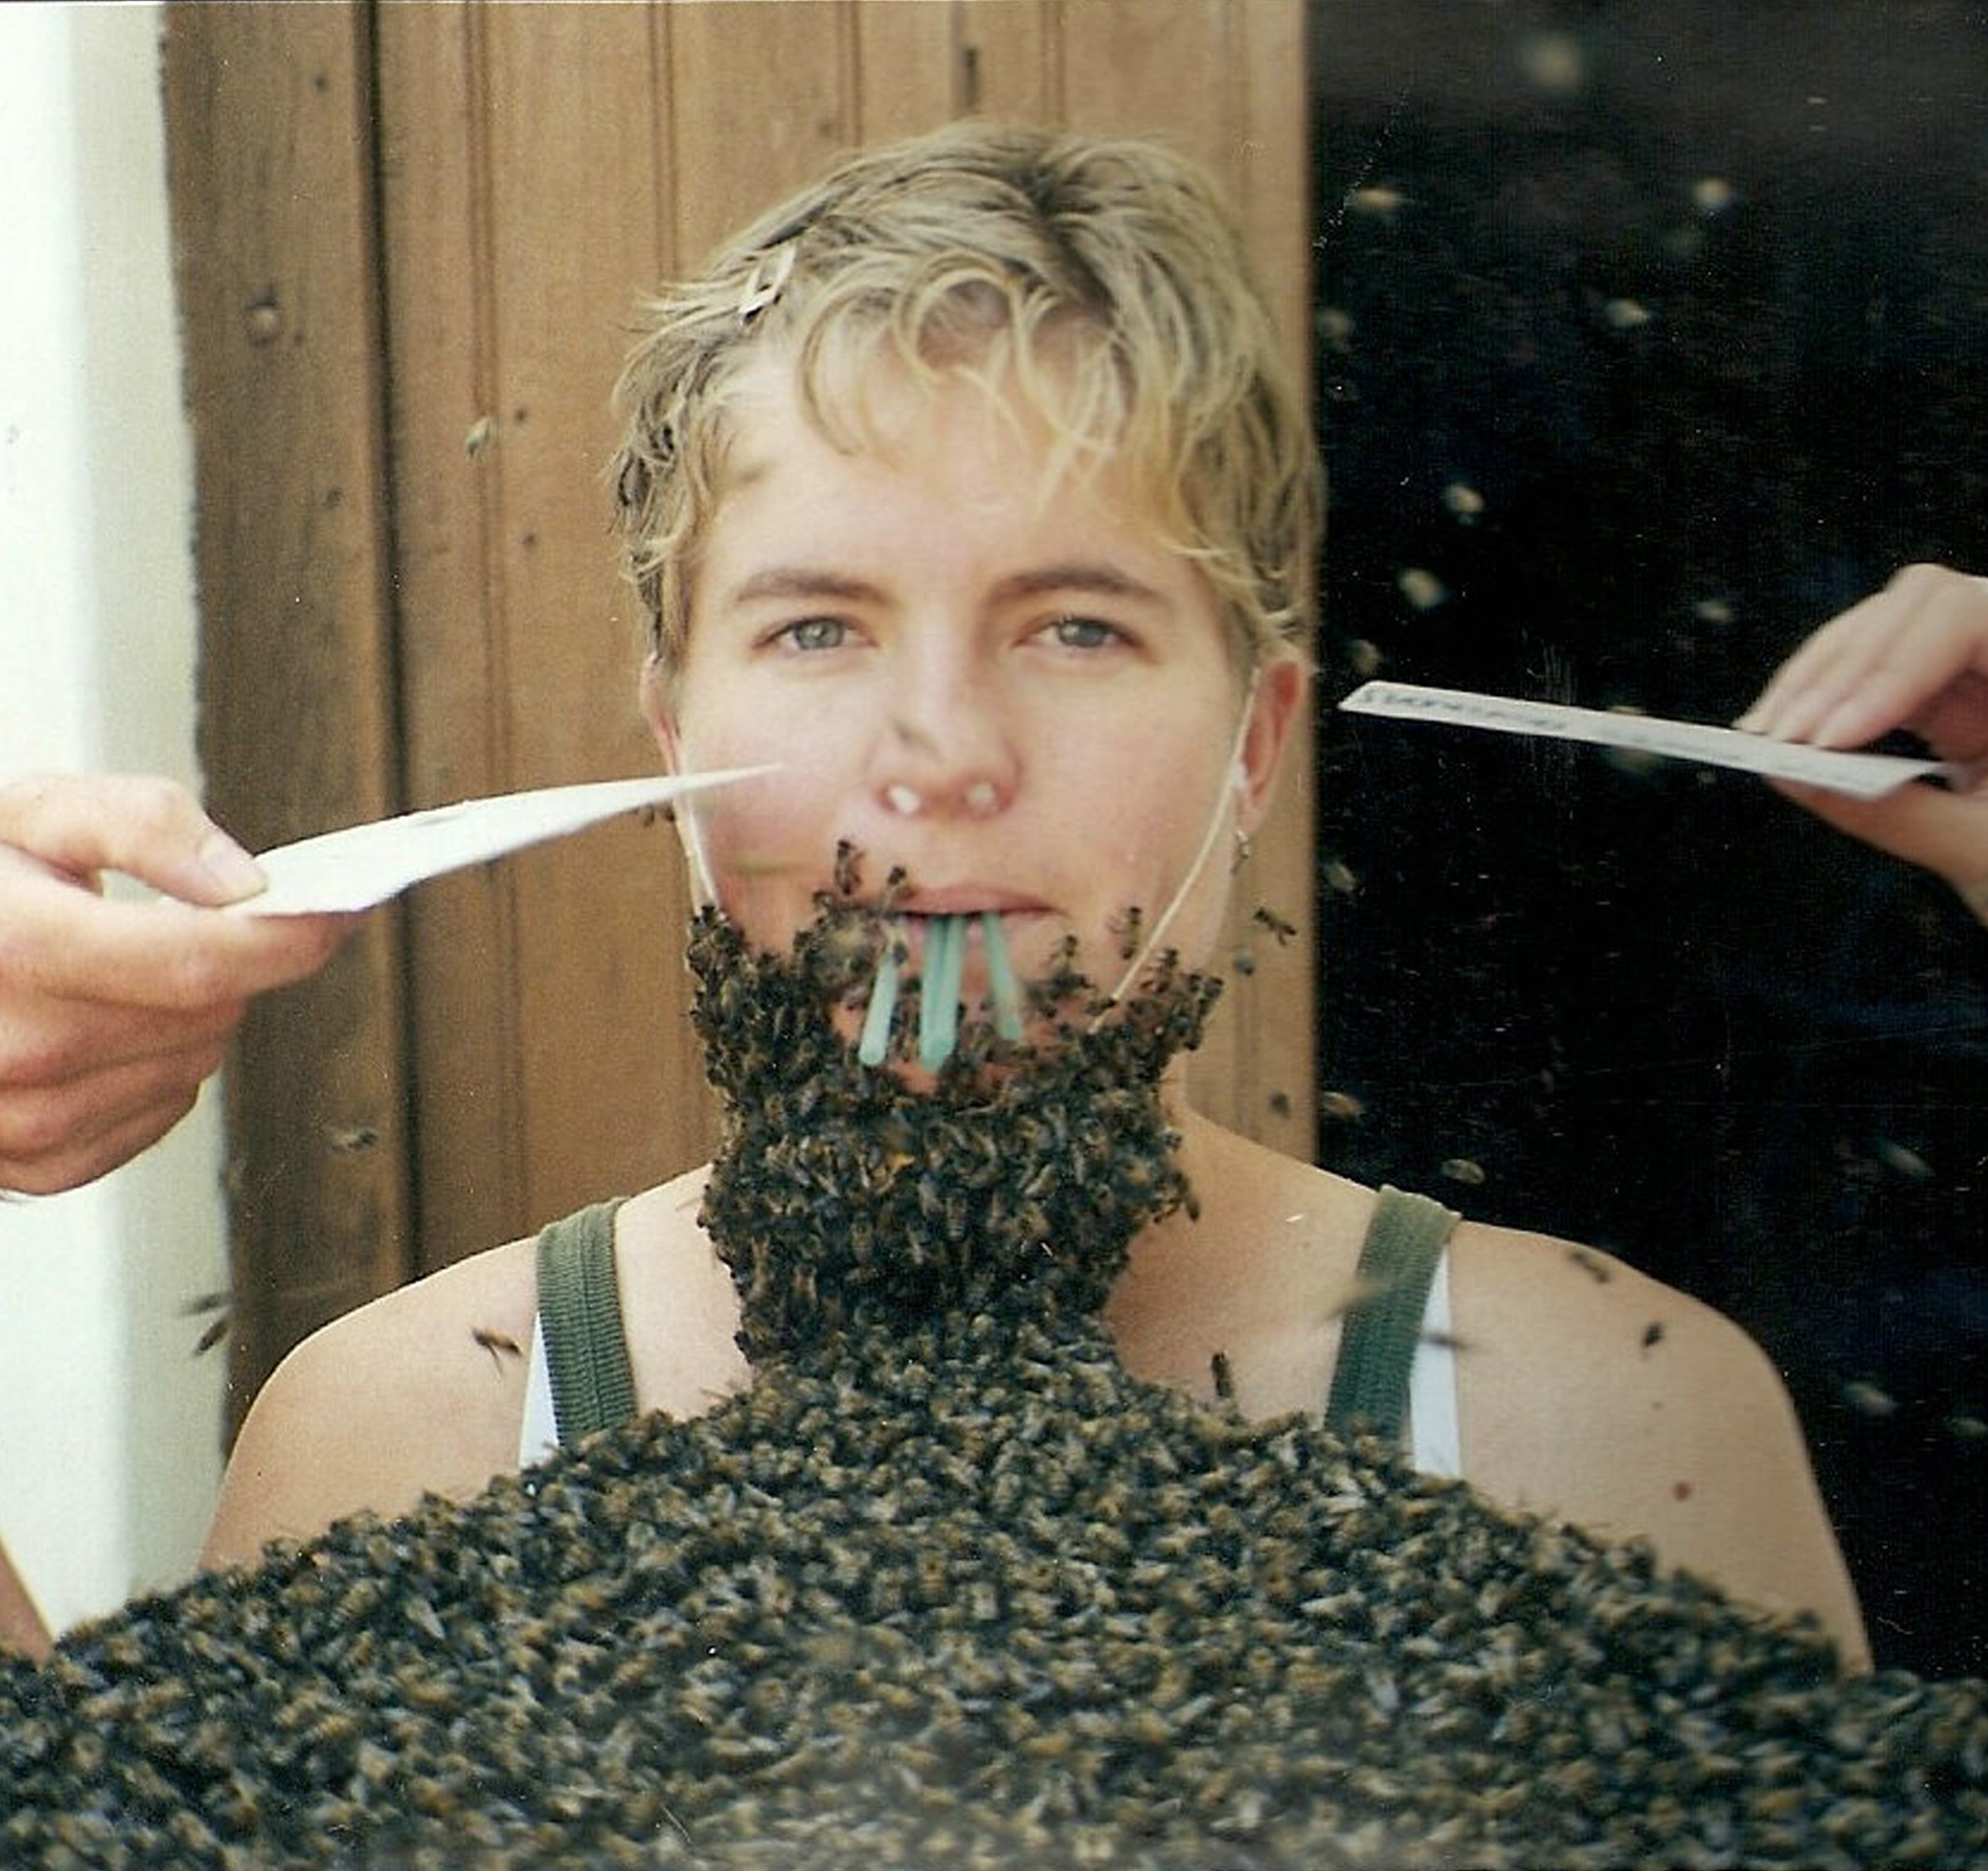 Paraguay, 2000 - getting my introduction to the bees in Peace Corps training. There's a queen in a cage strapped to my chin. The rest of the bees just want to be with her. Hands are keeping bees from taking a tour of my eyeballs.